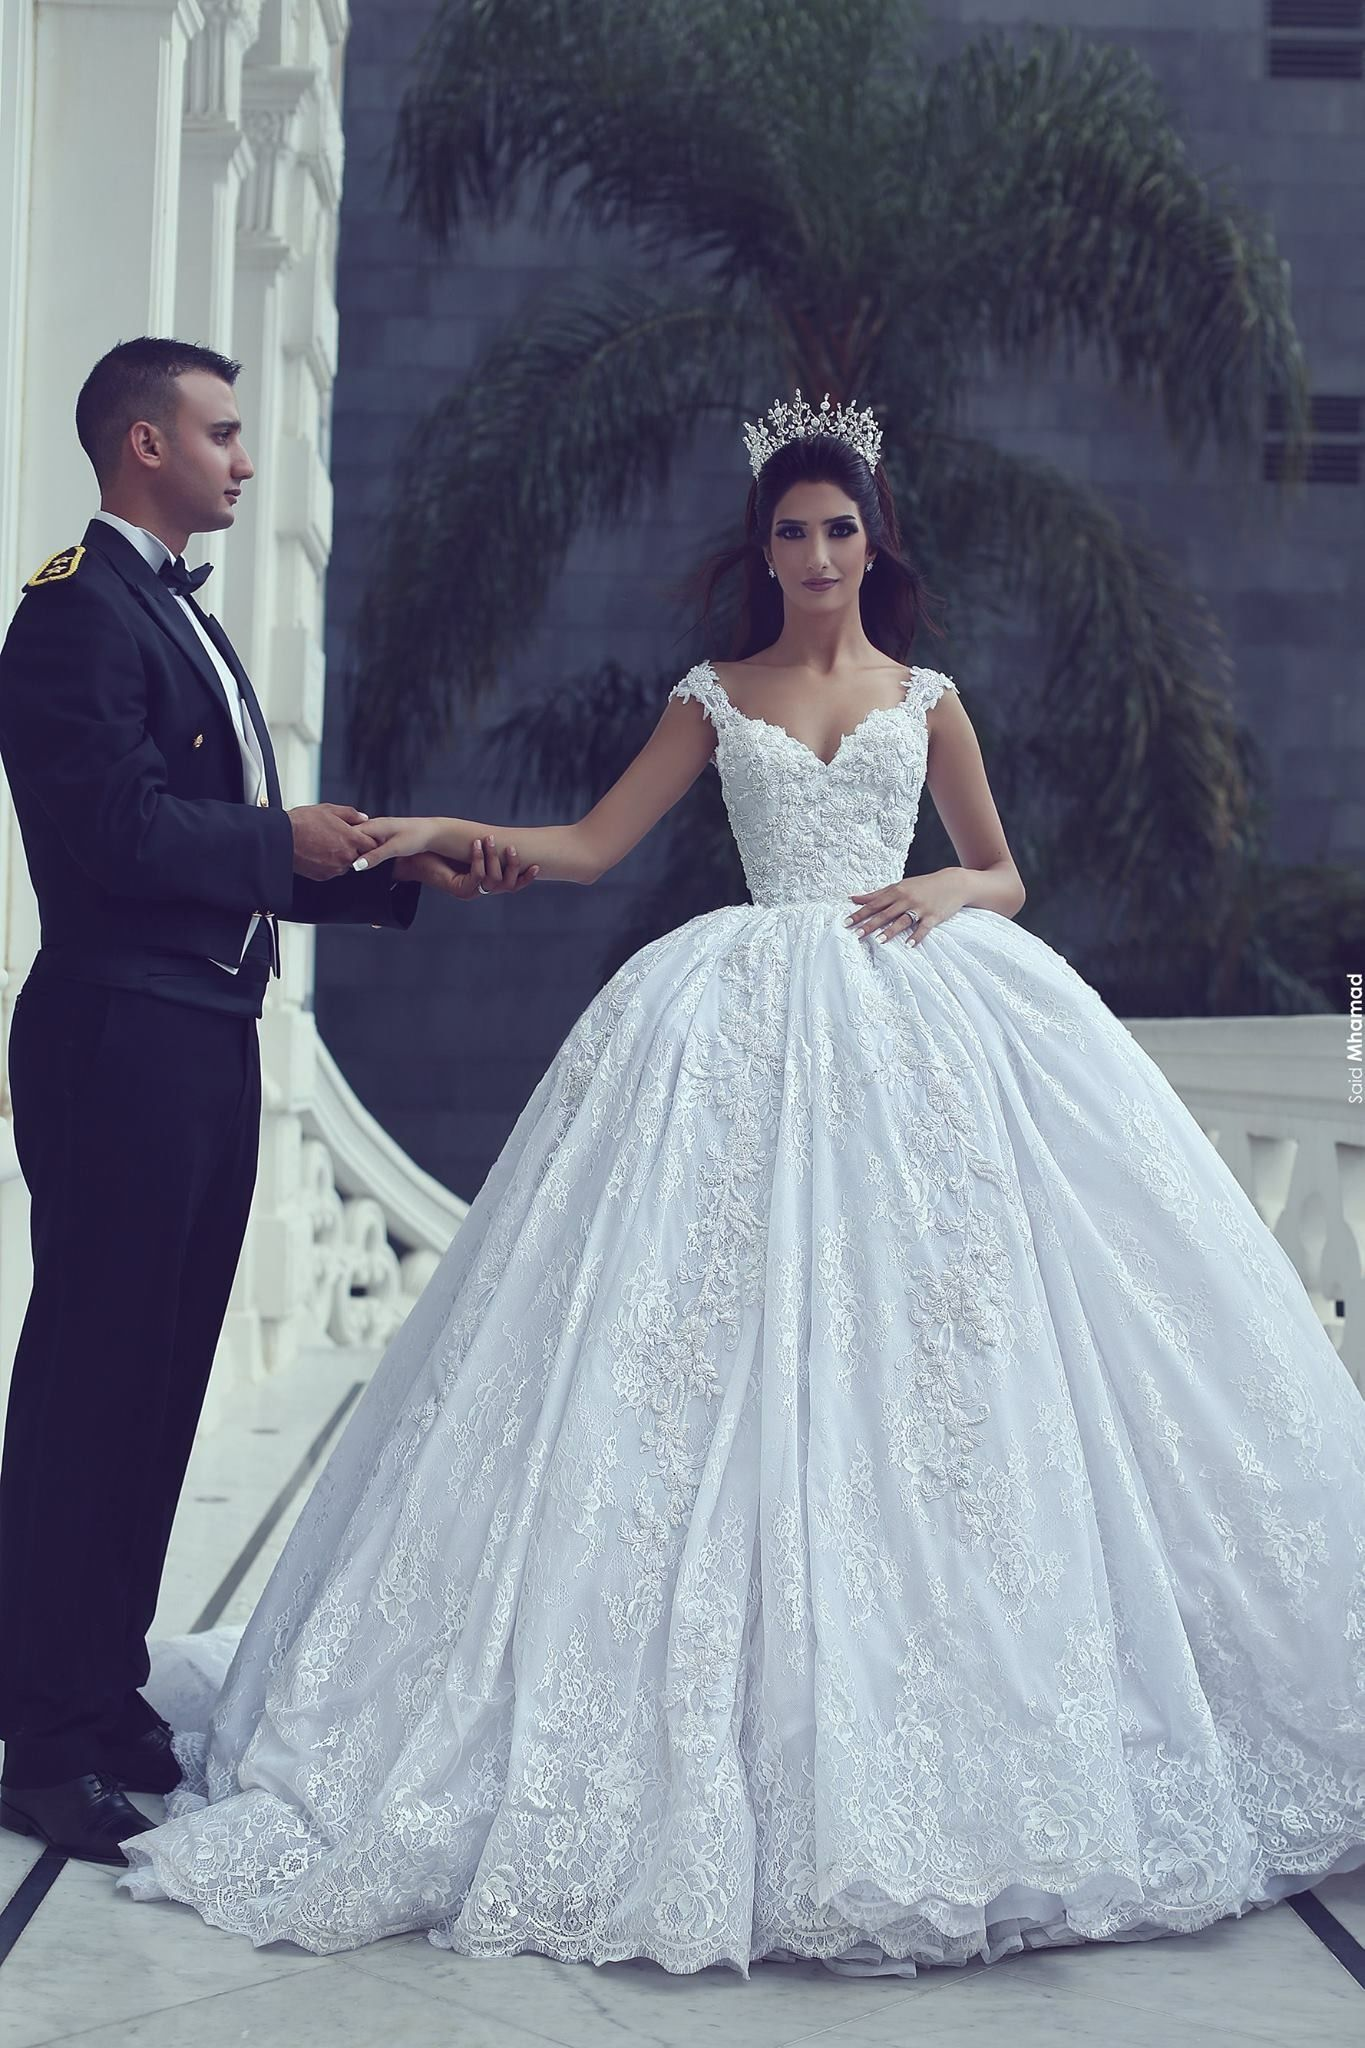 Fairytale ball gown wedding dresses  Pin by Elena on свадьба  Pinterest  Queens Weddings and Wedding dress